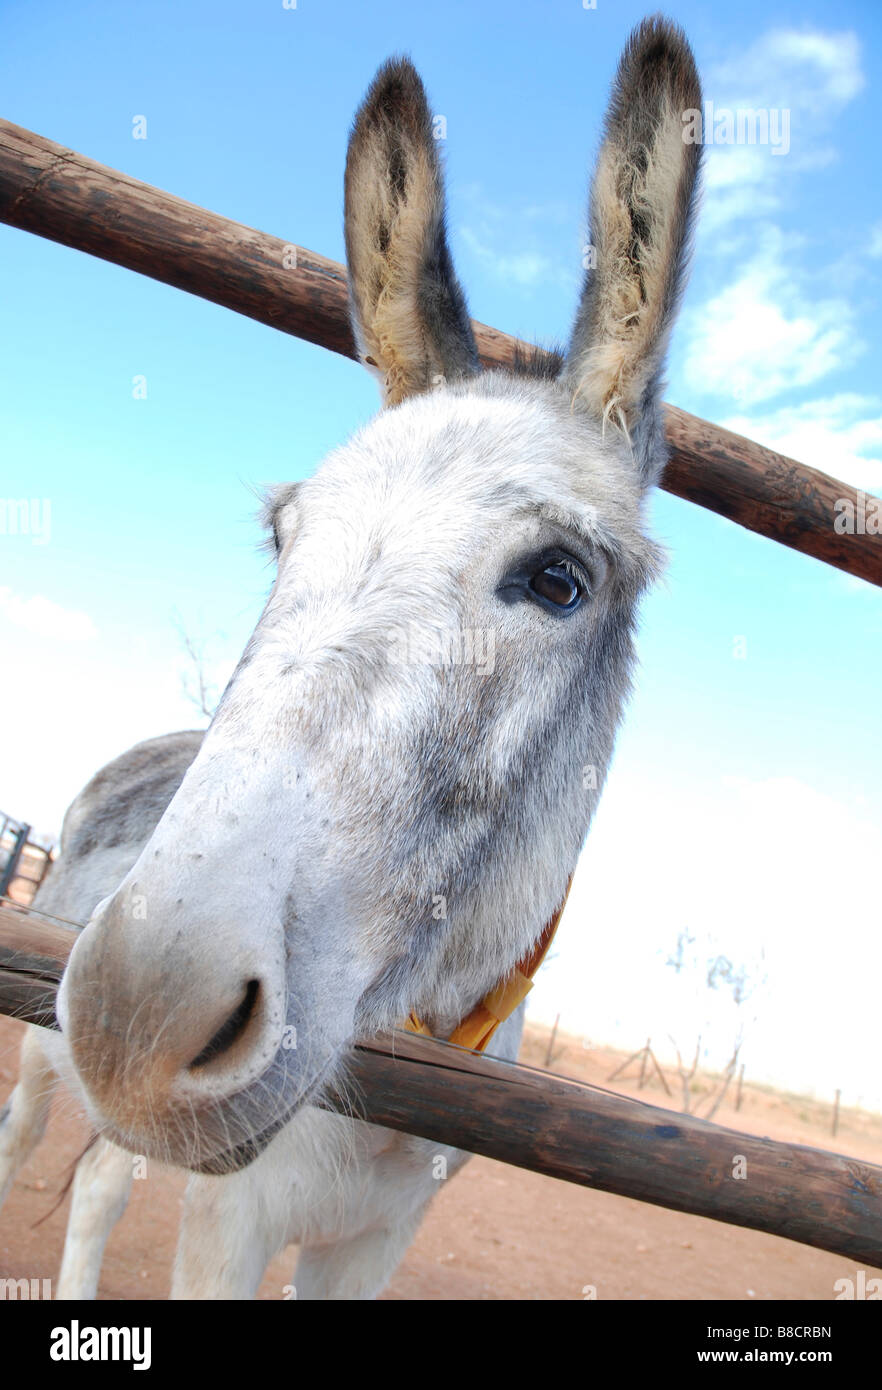 Donkey looking through a fence - Stock Image